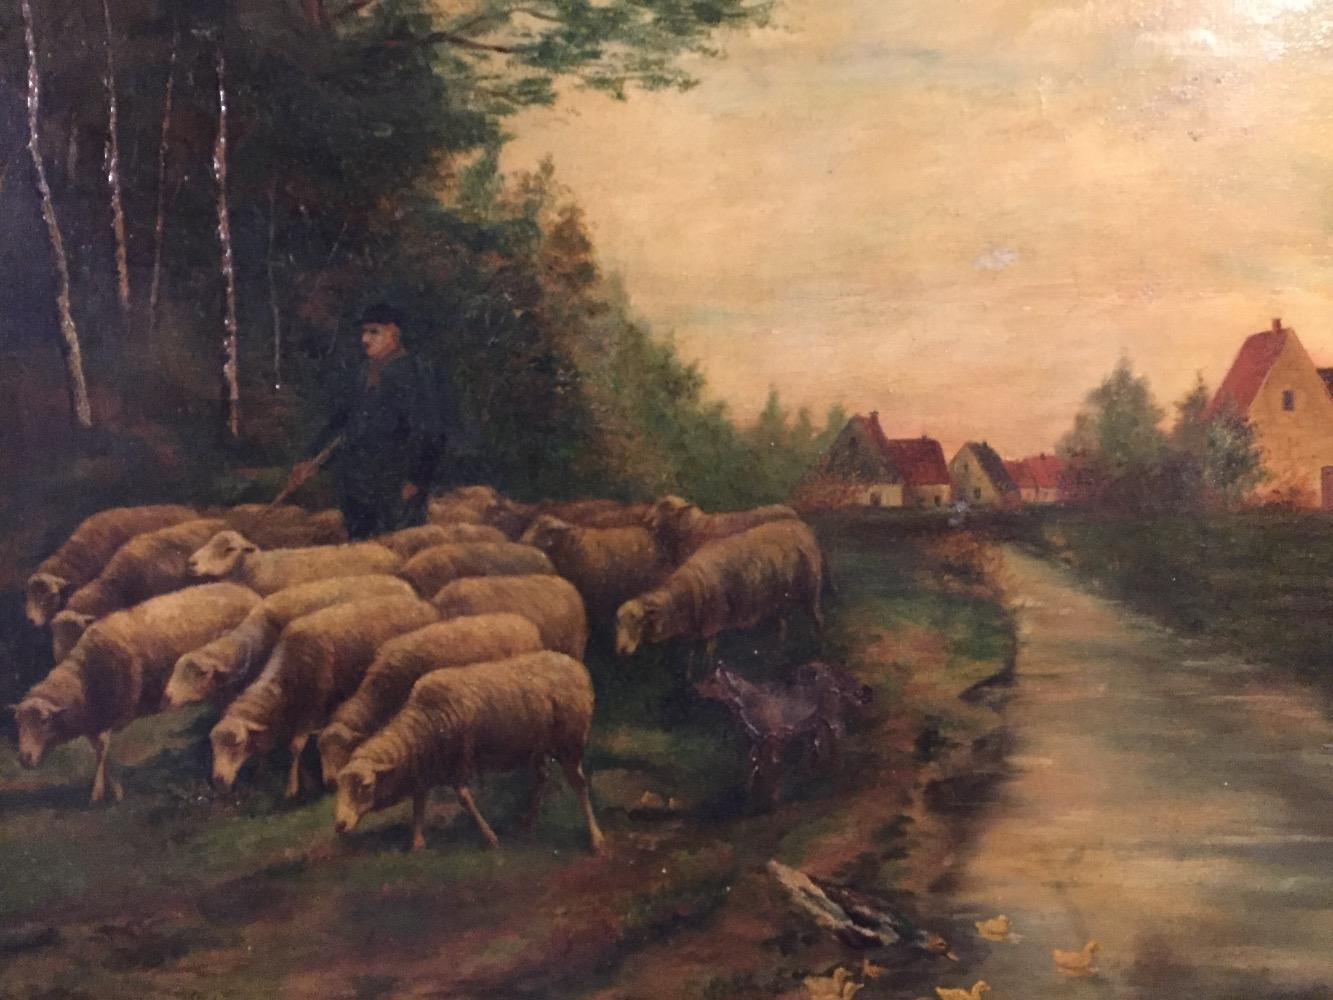 Shepherd with his sheep